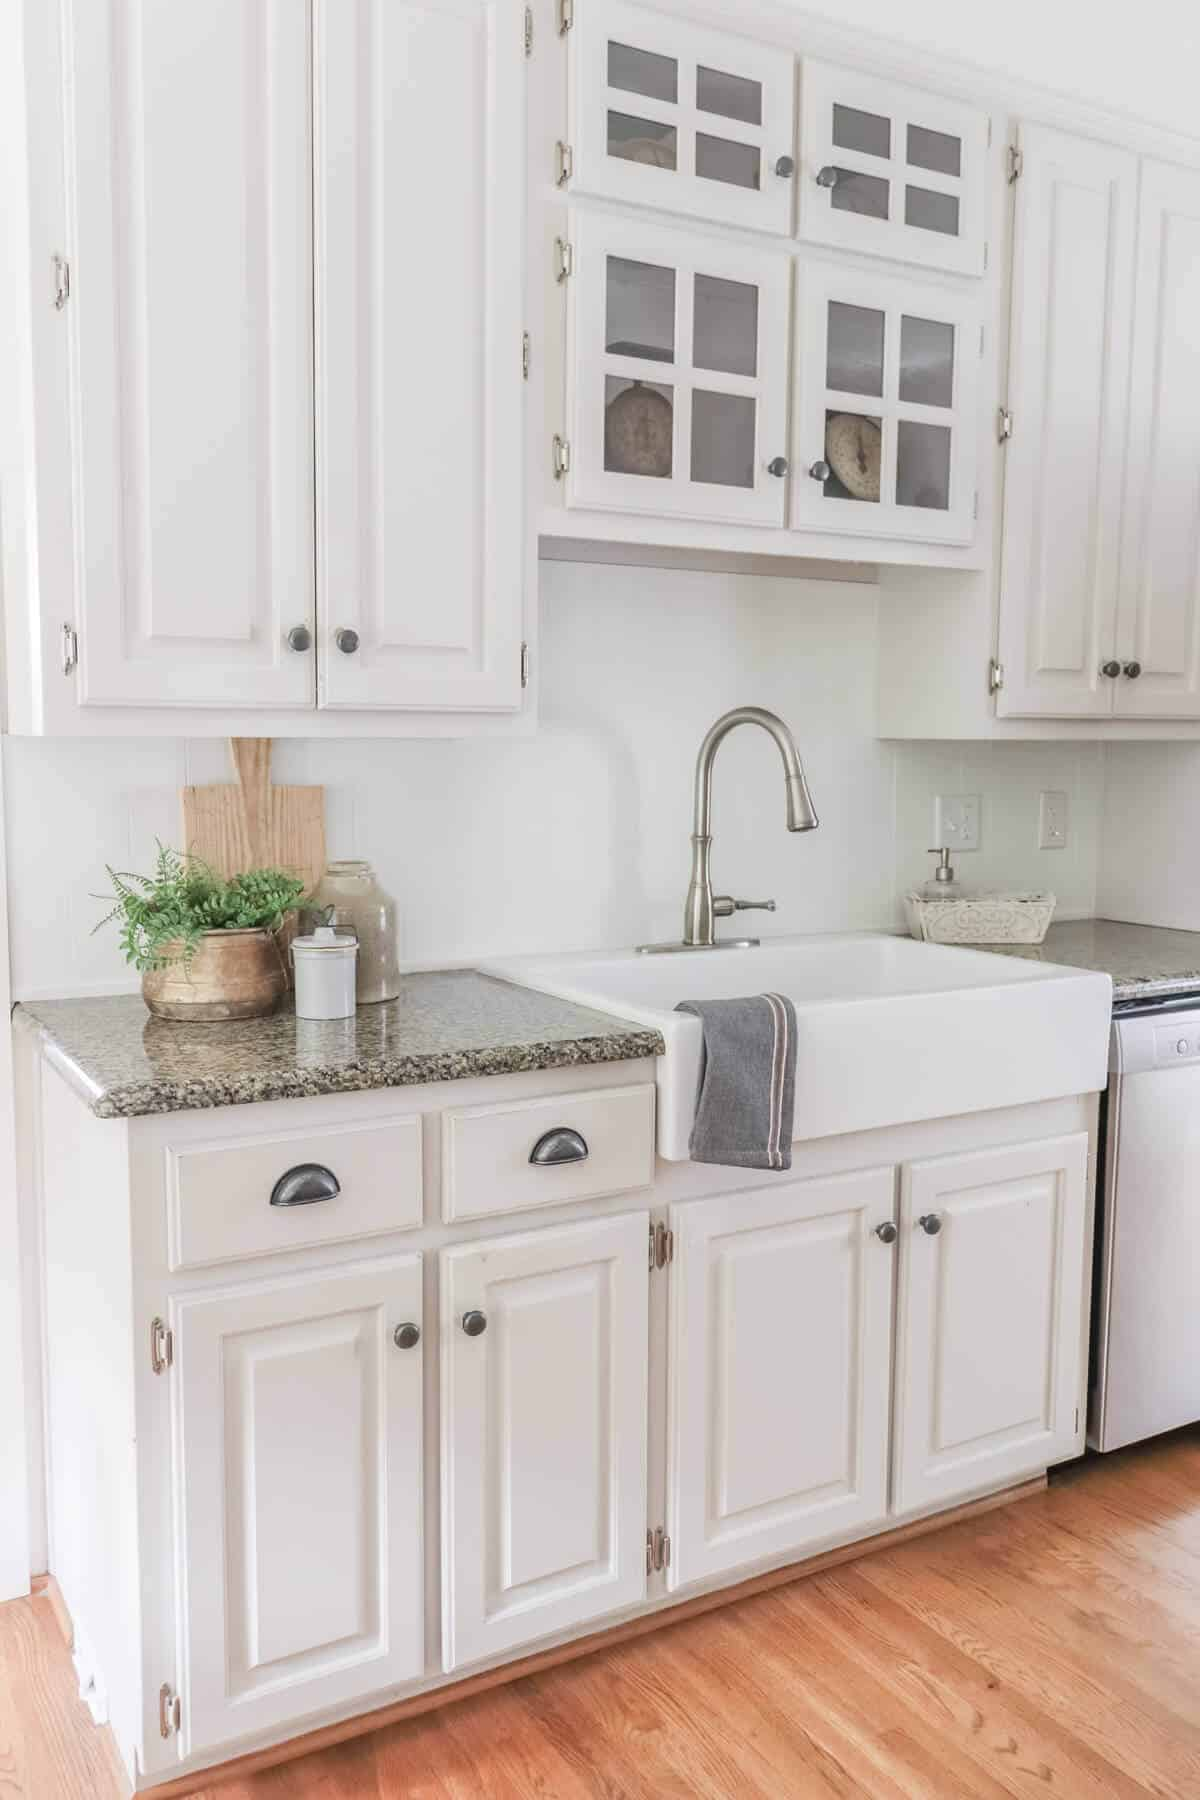 Light beige kitchen cabinets with granite counters, apron front sink and stone crockery